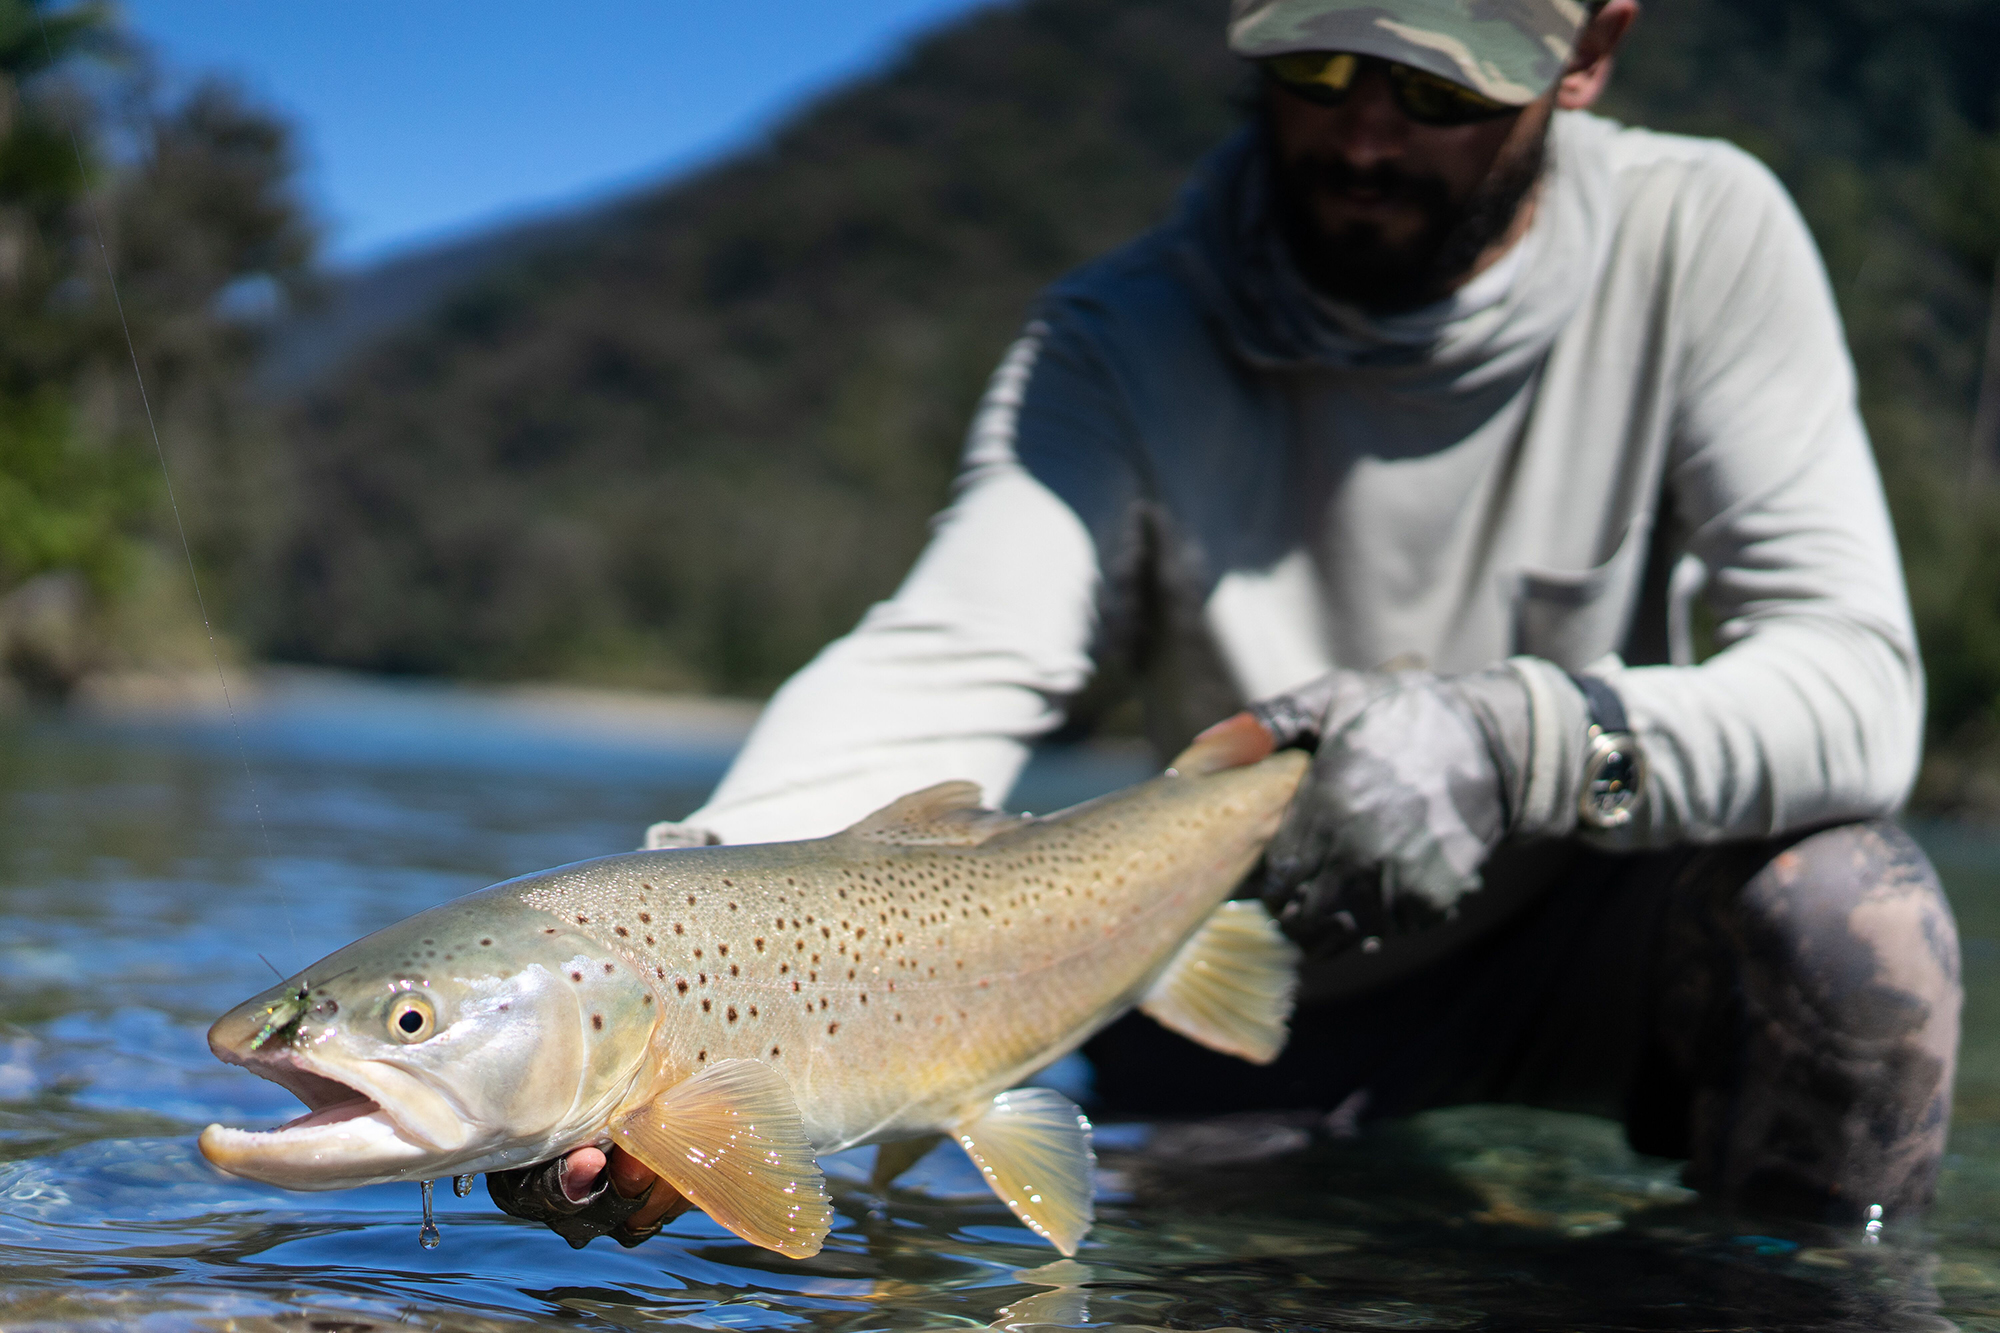 Mike Idell catching fish in New Zealand